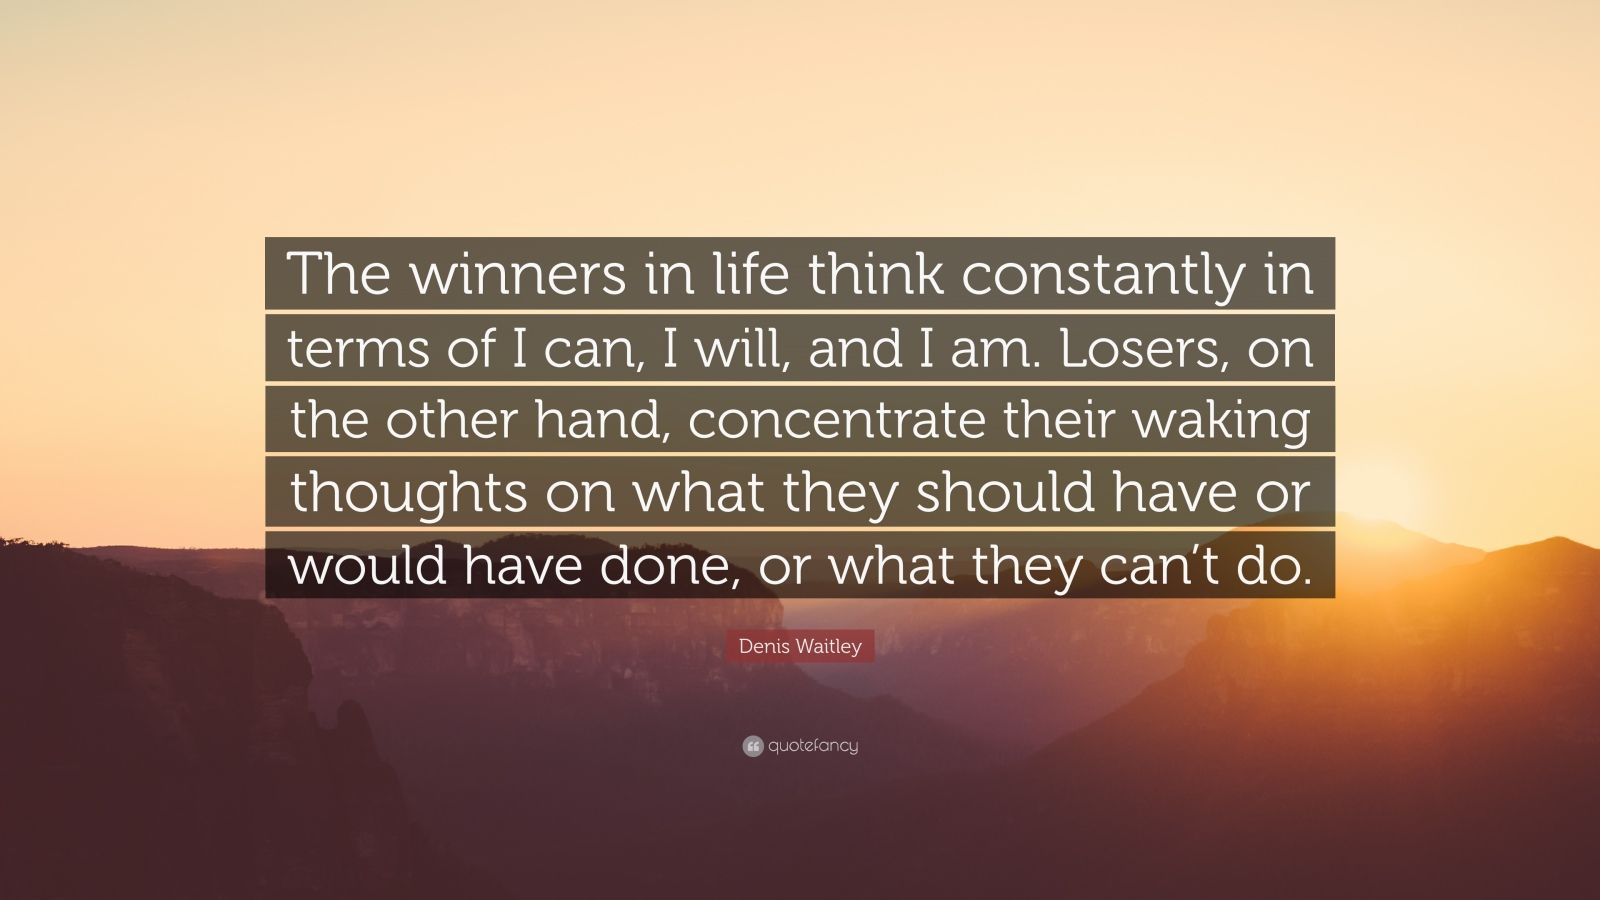 """Denis Waitley Quote: """"The winners in life think constantly in terms of I can, I will, and I am. Losers, on the other hand, concentrate their waking thoughts on what they should have or would have done, or what they can't do."""""""